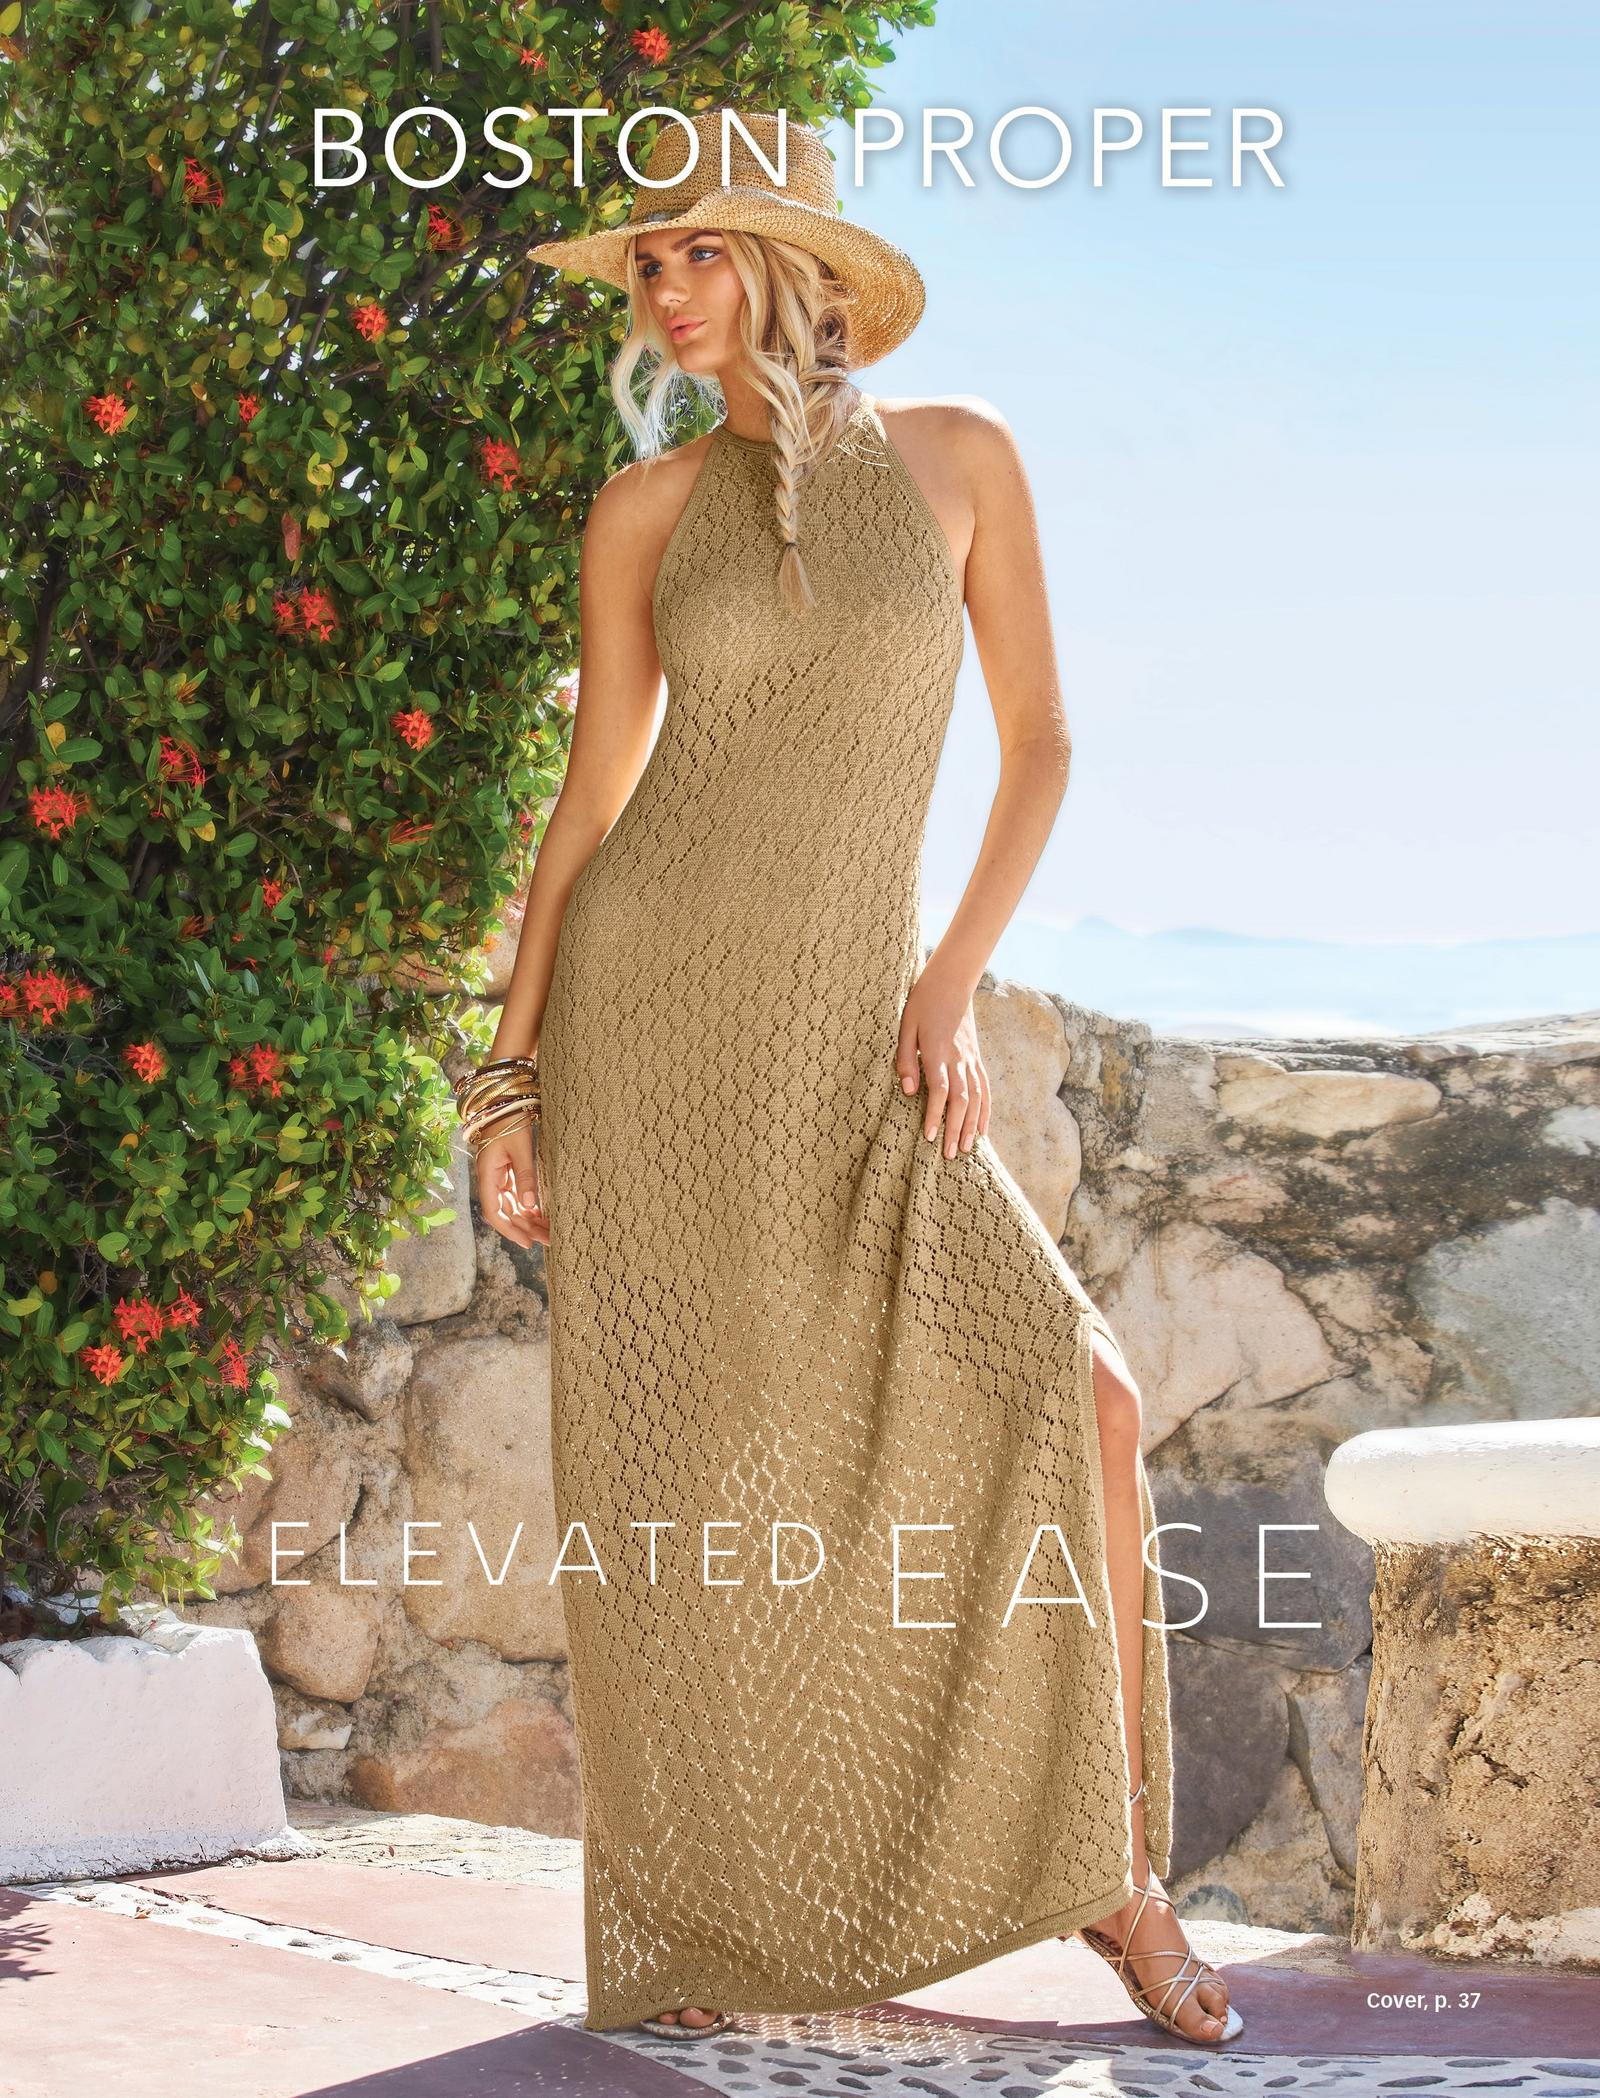 model wearing a tan high-neck sleeveless crochet maxi dress, straw hat, and silver strappy sandals.